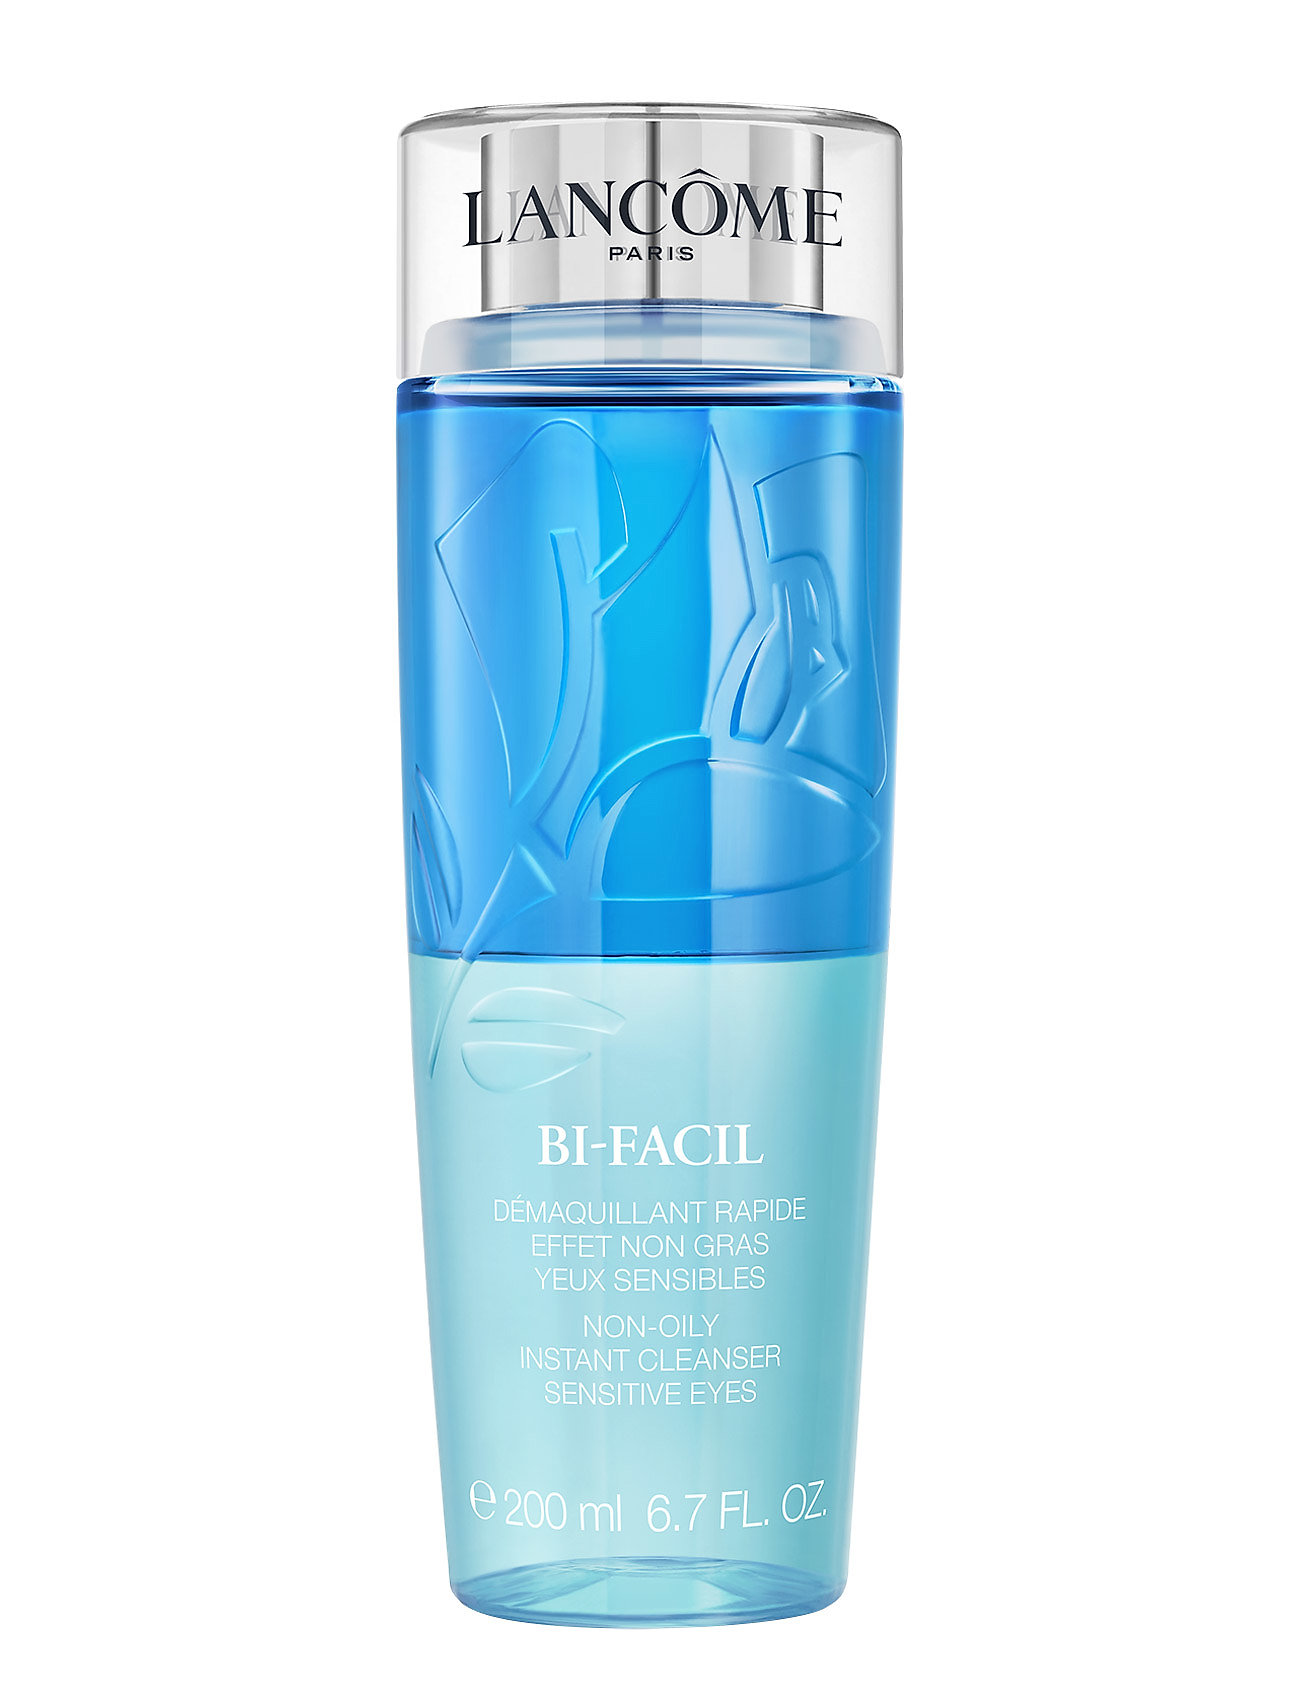 Lancôme Bi Facil 200 ml - CLEAR